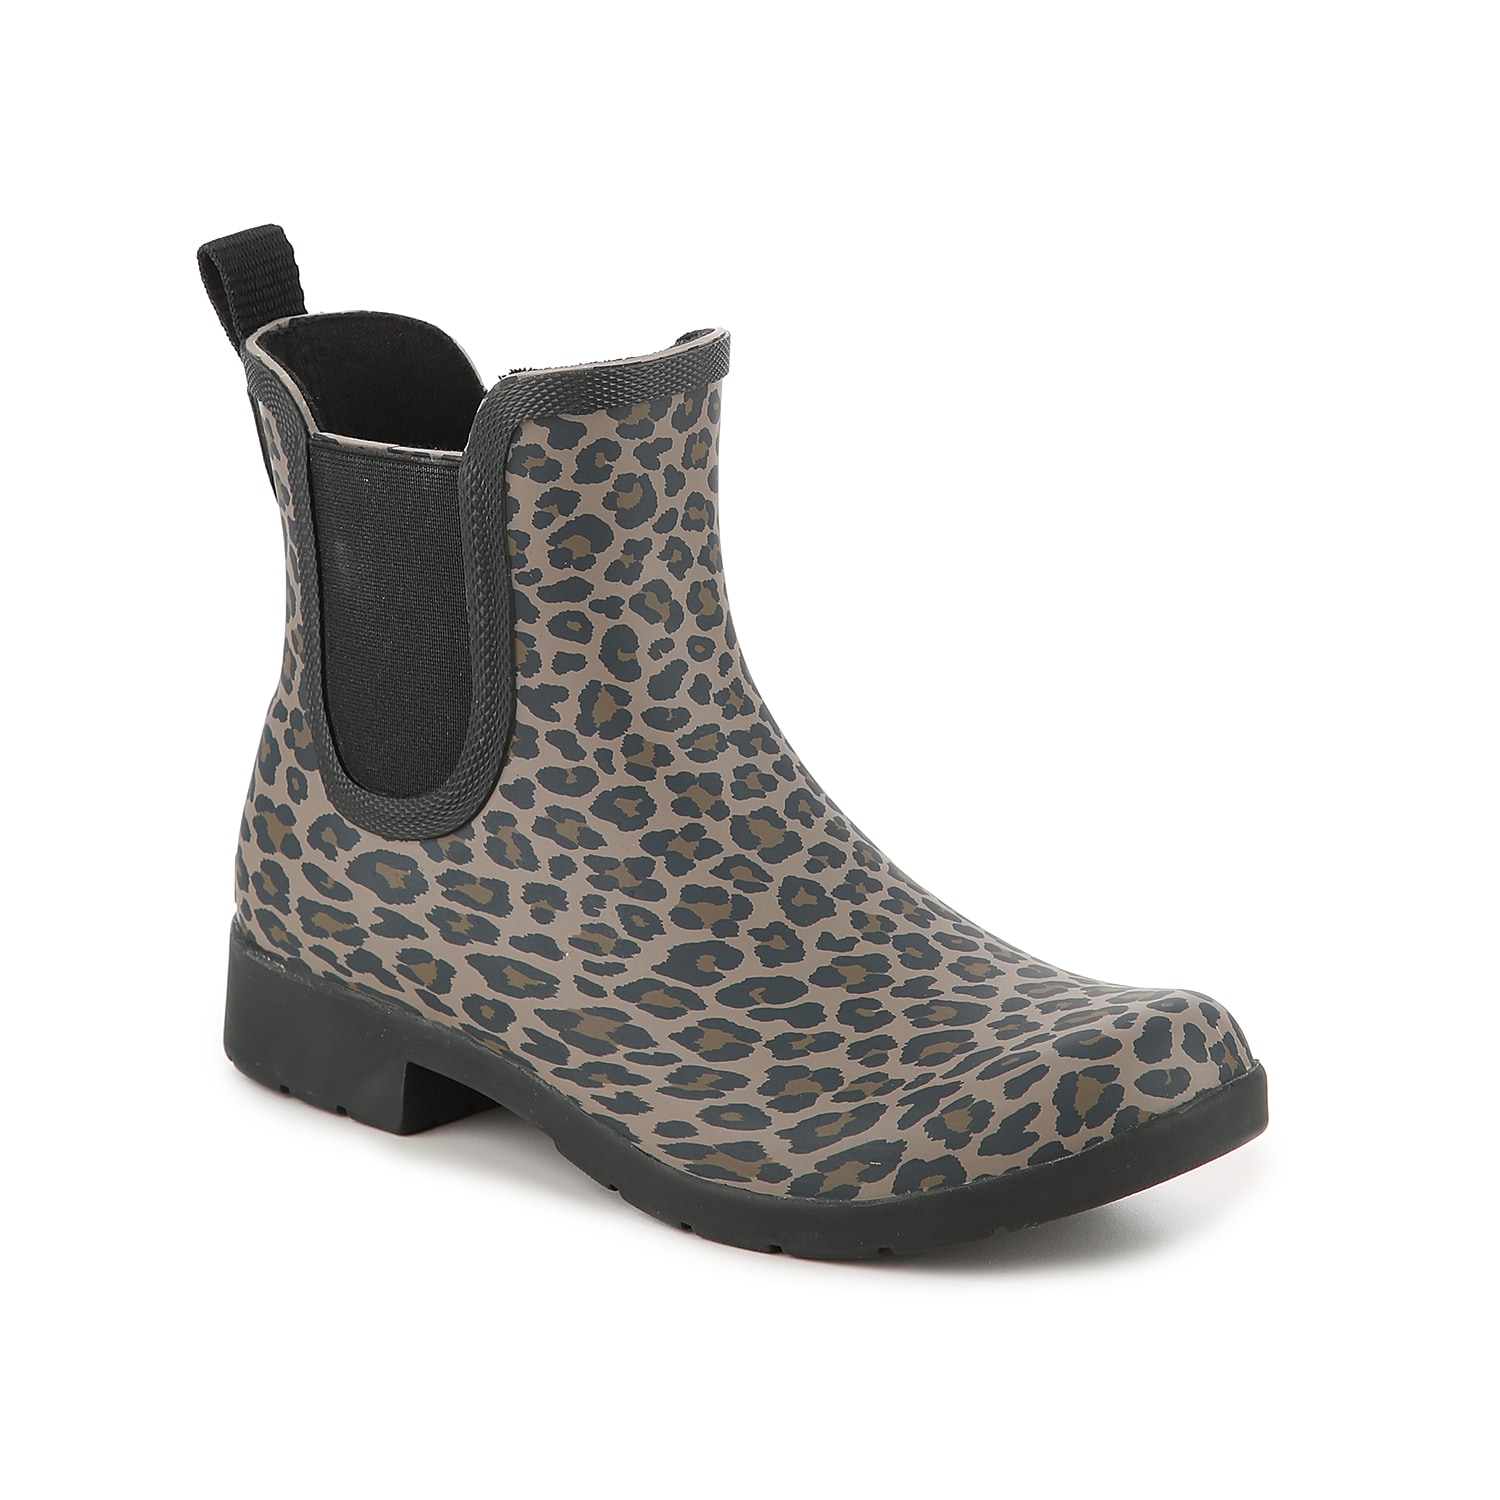 Splash it out on rainy days in the Eastlake Leopard wellies from Chooka. This Chelsea bootie features a wild print to brighten up those gloomy days!